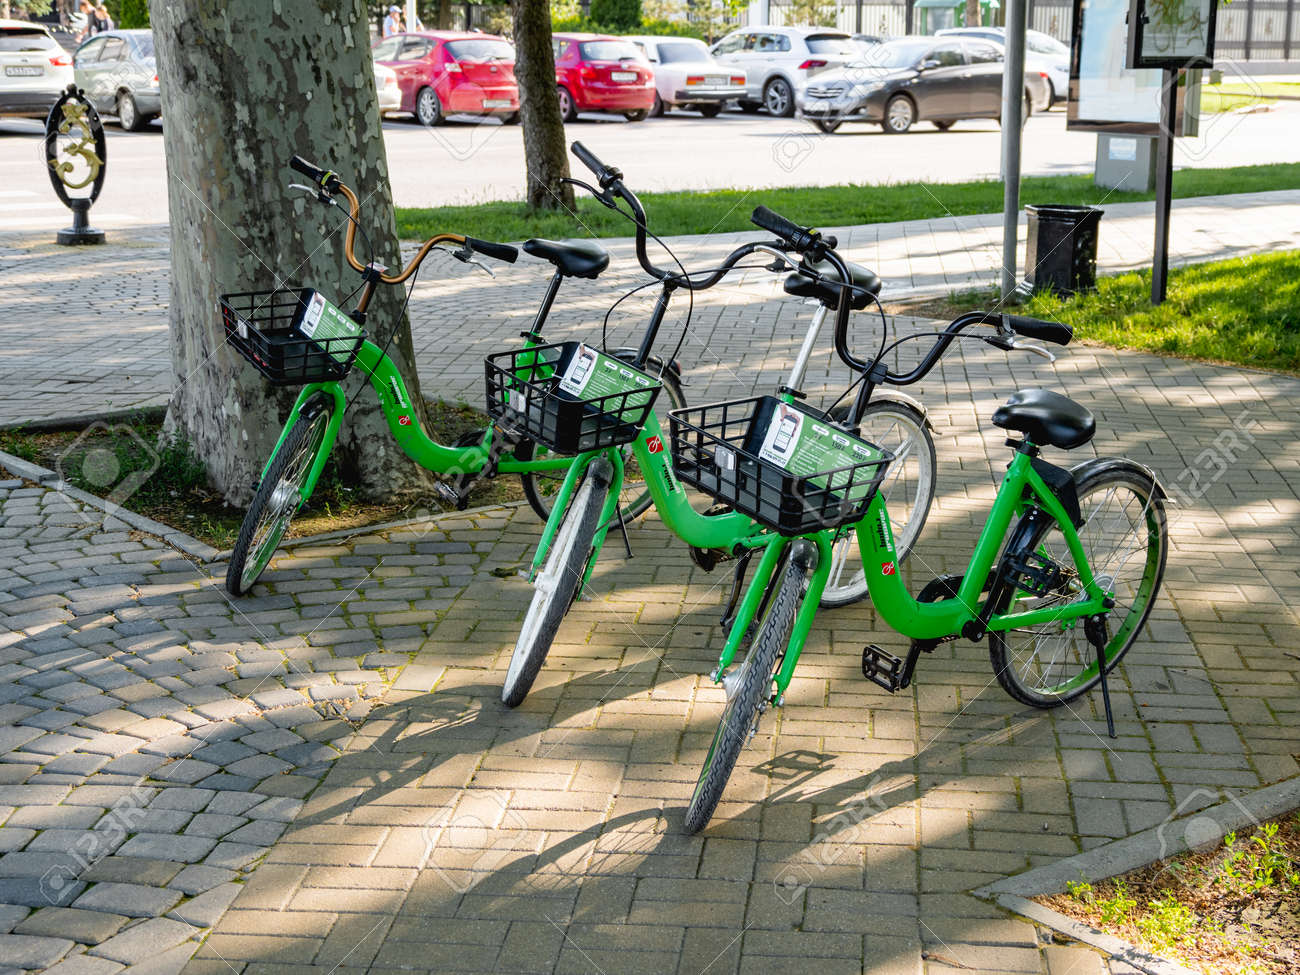 KRASNODAR, RUSSIA - June 02, 2021. Bicycles for rent in urban park. Eco-friendly and comfortable urban transport for tourists and locals. - 172456679